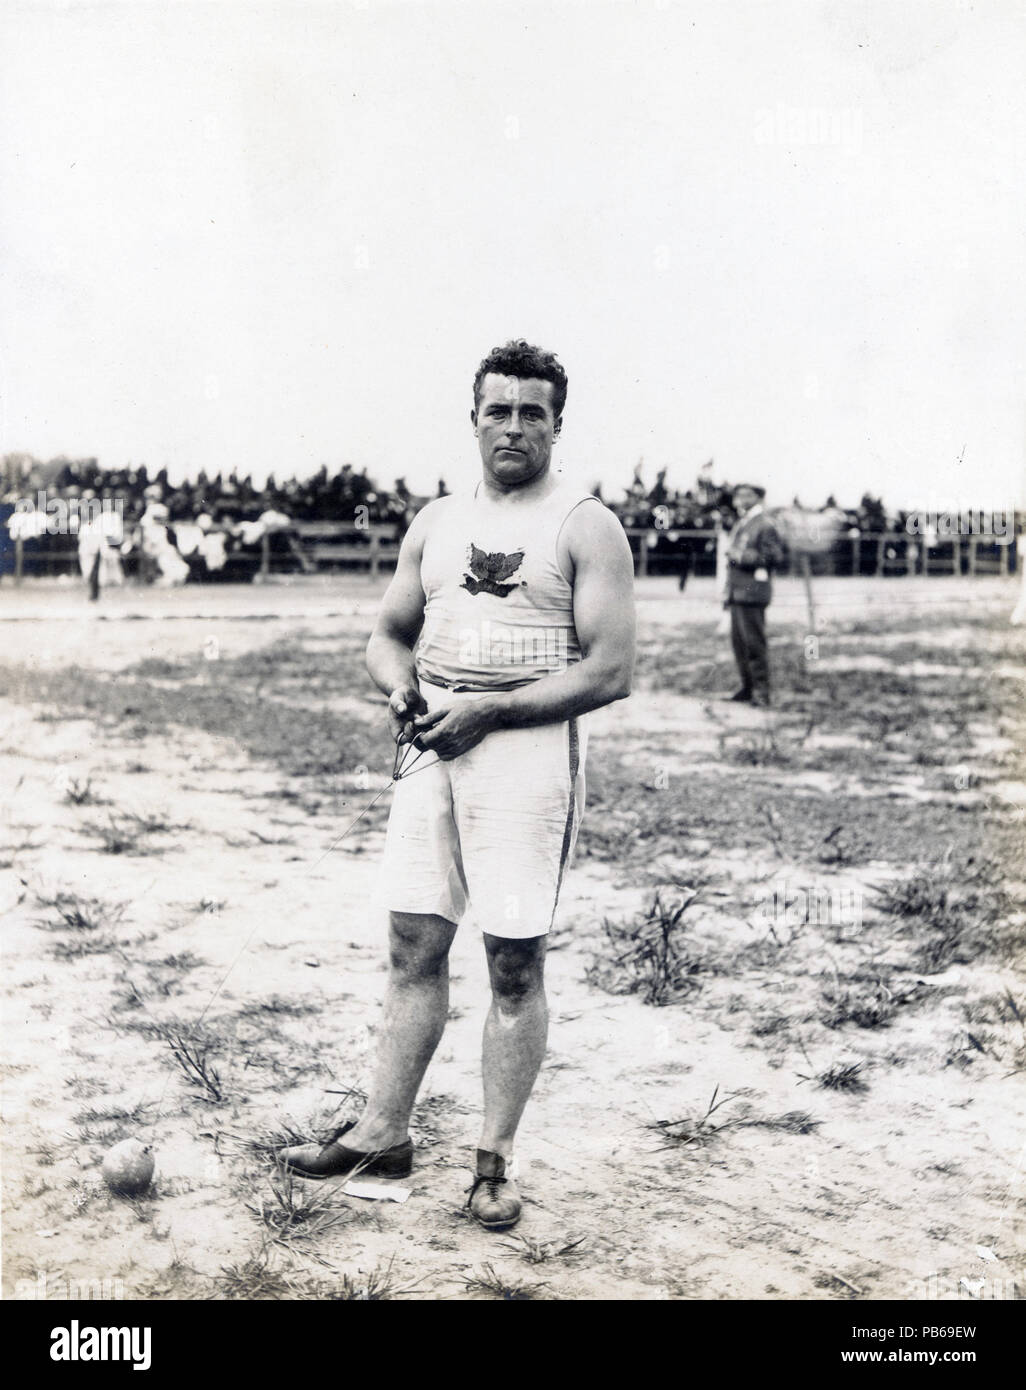 838 John Jesus Flannigan of the Greater New York Irish Athletic Association, winner of the 16 pound hammer throw at the 1904 Olympics - Stock Image